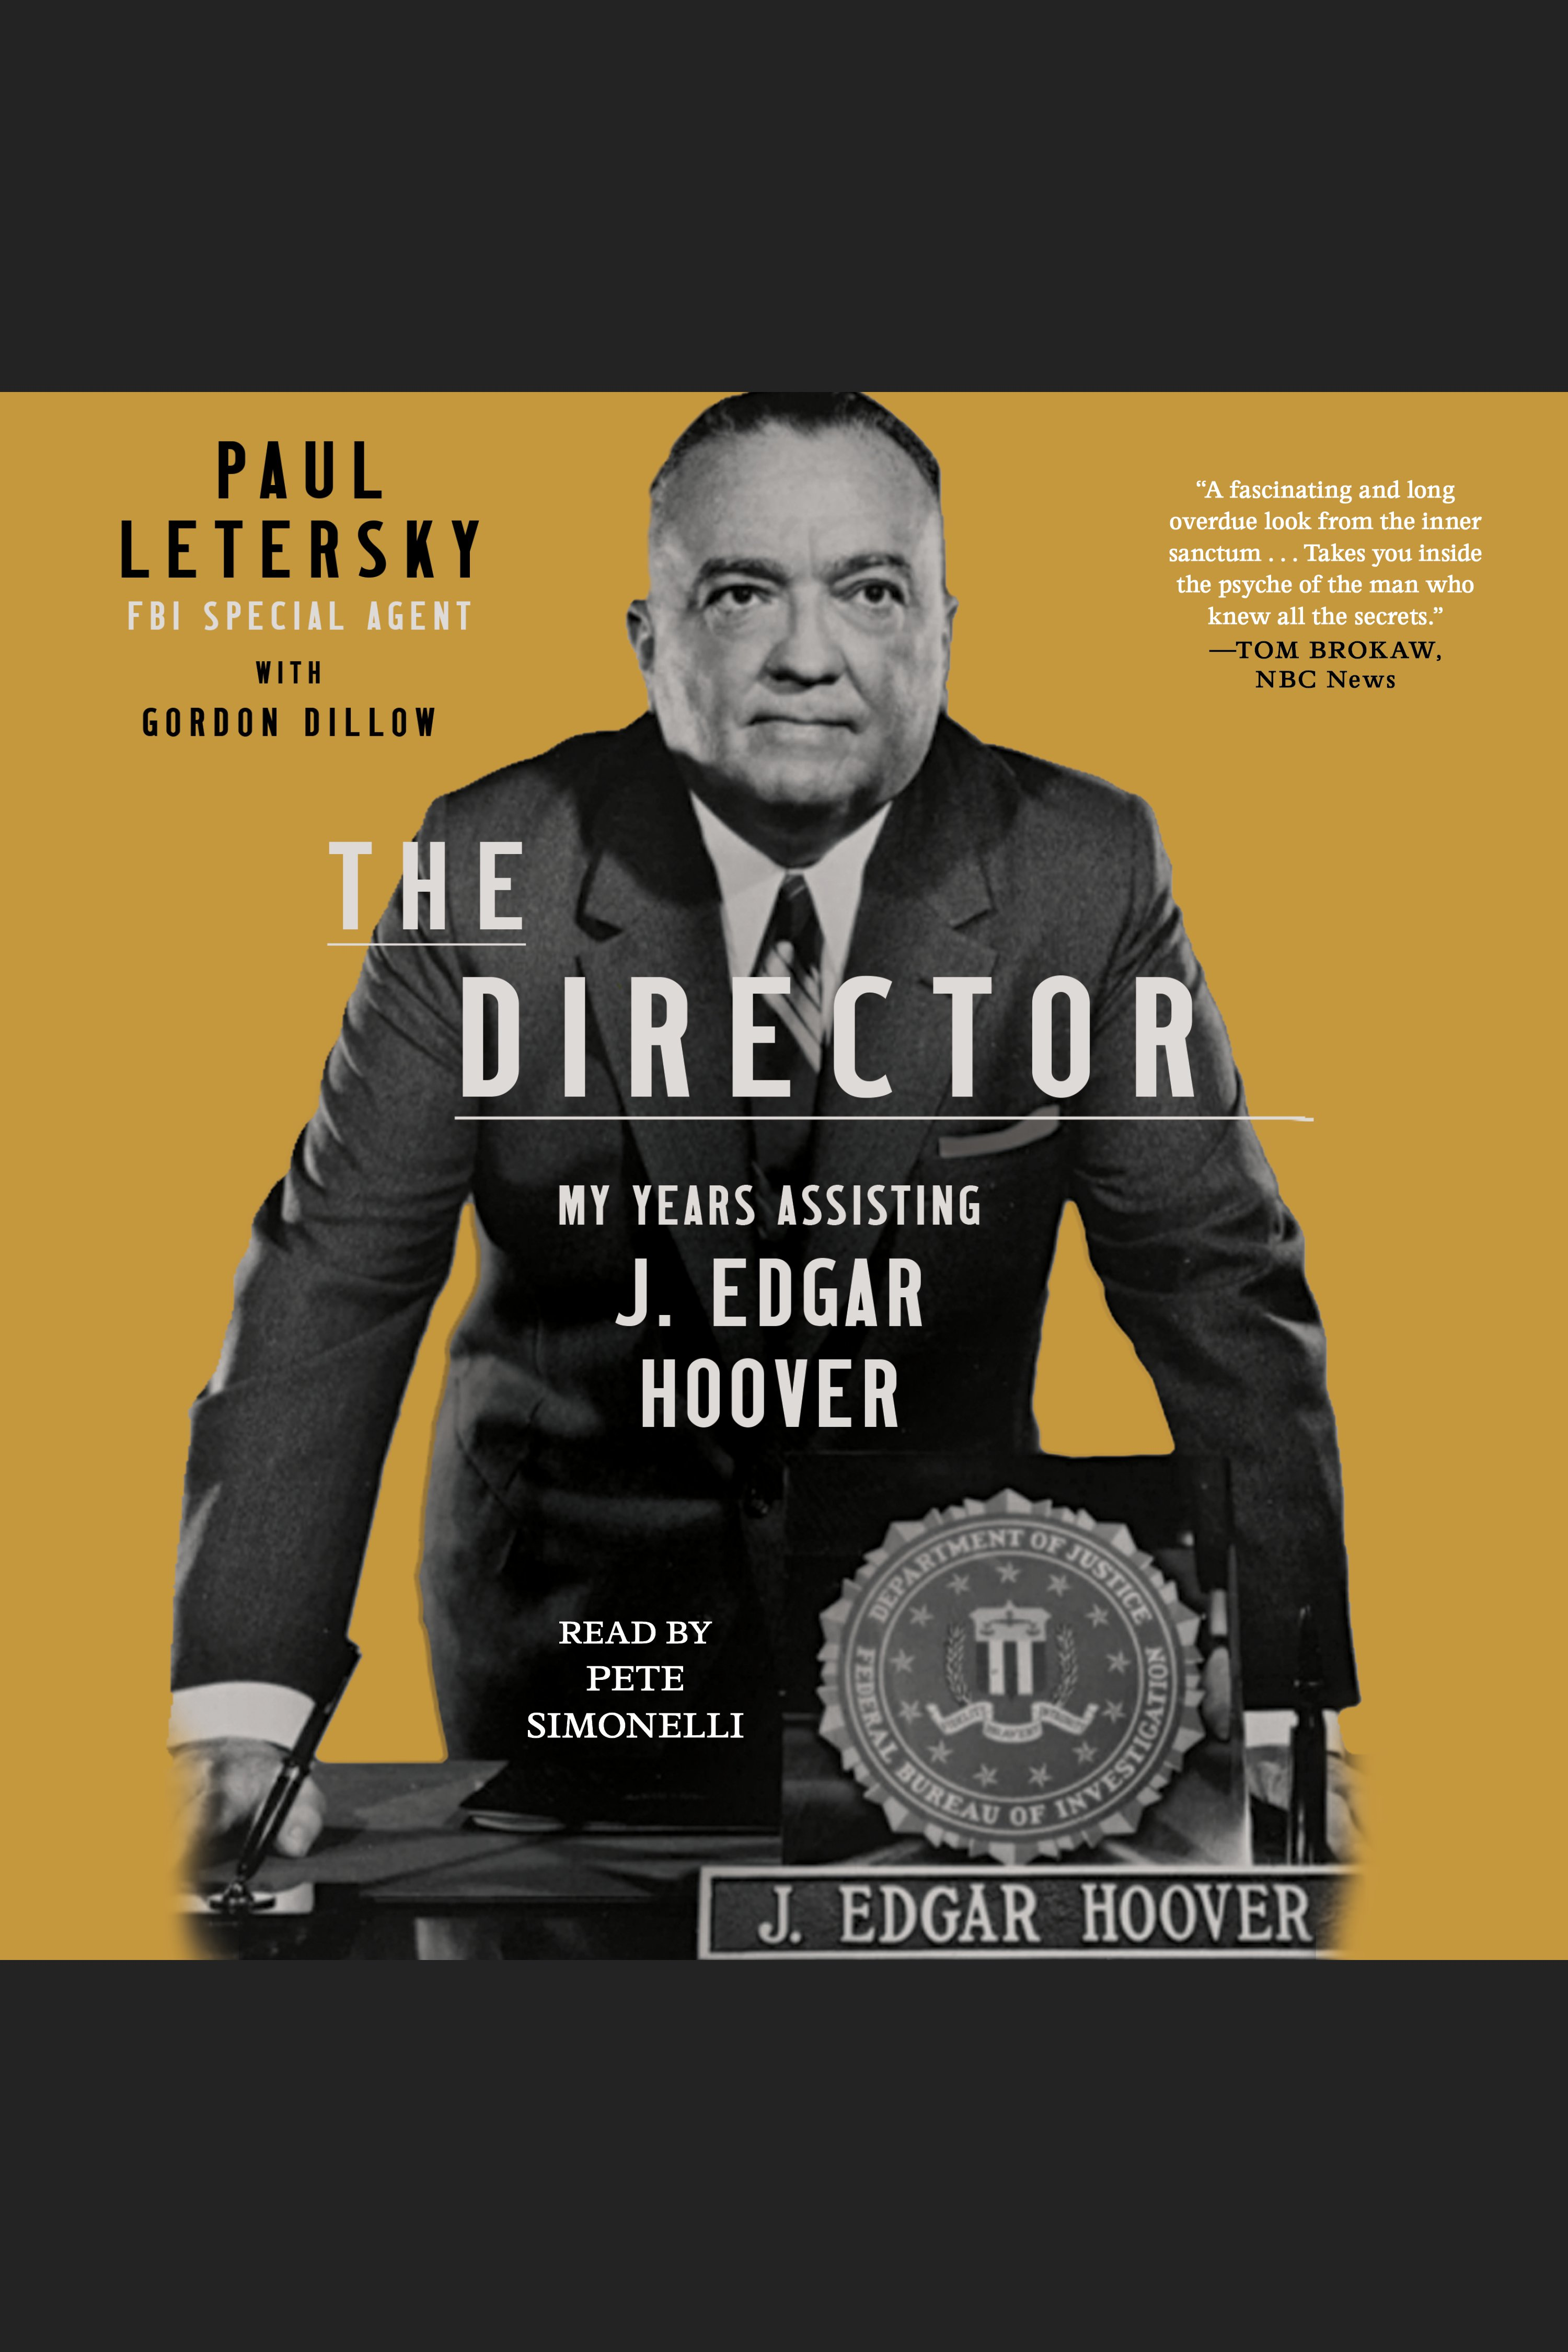 Director, The My Years Assisting J. Edgar Hoover